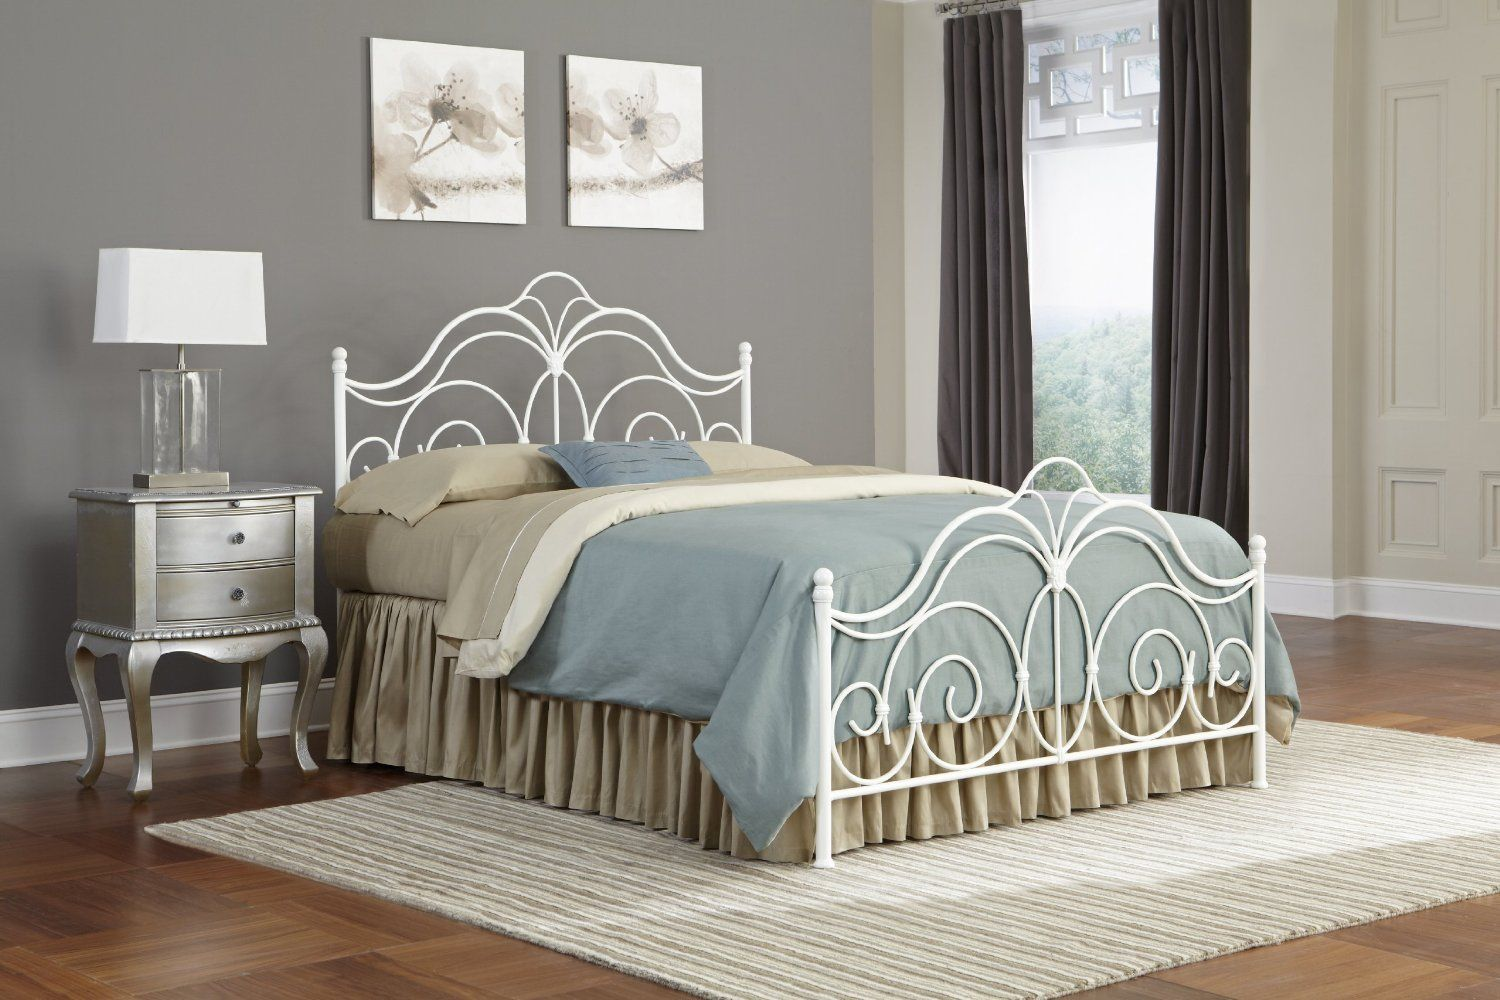 Bedroom Dexter Metal Headboard With Decorative Castings